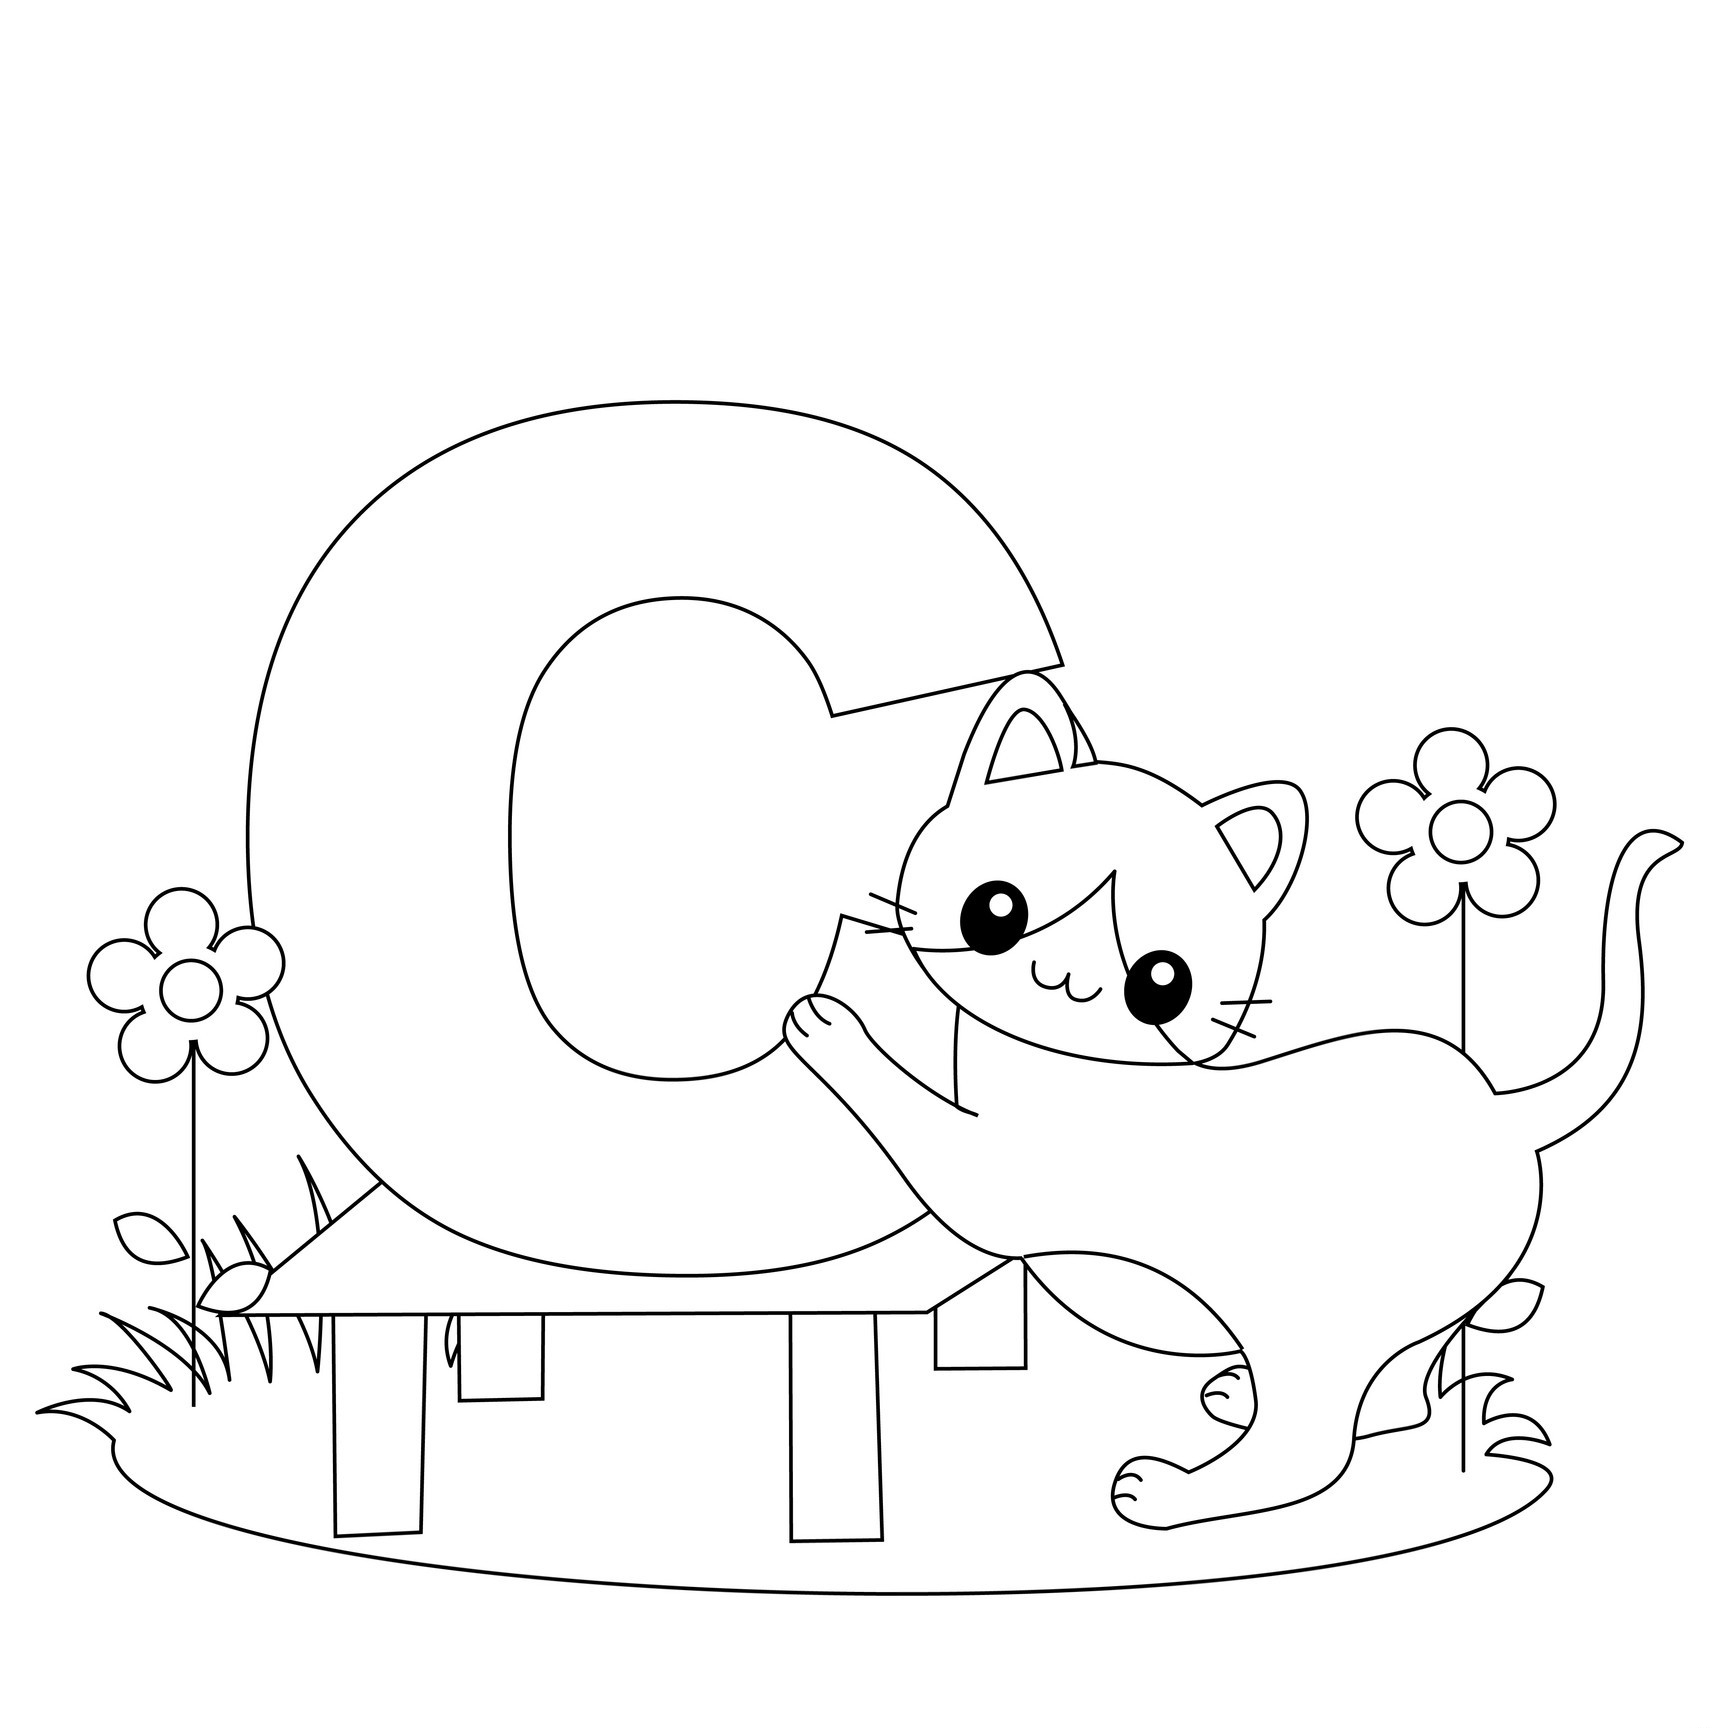 c coloring pages for kids free letter c printable coloring pages for preschool cat pages for c kids coloring